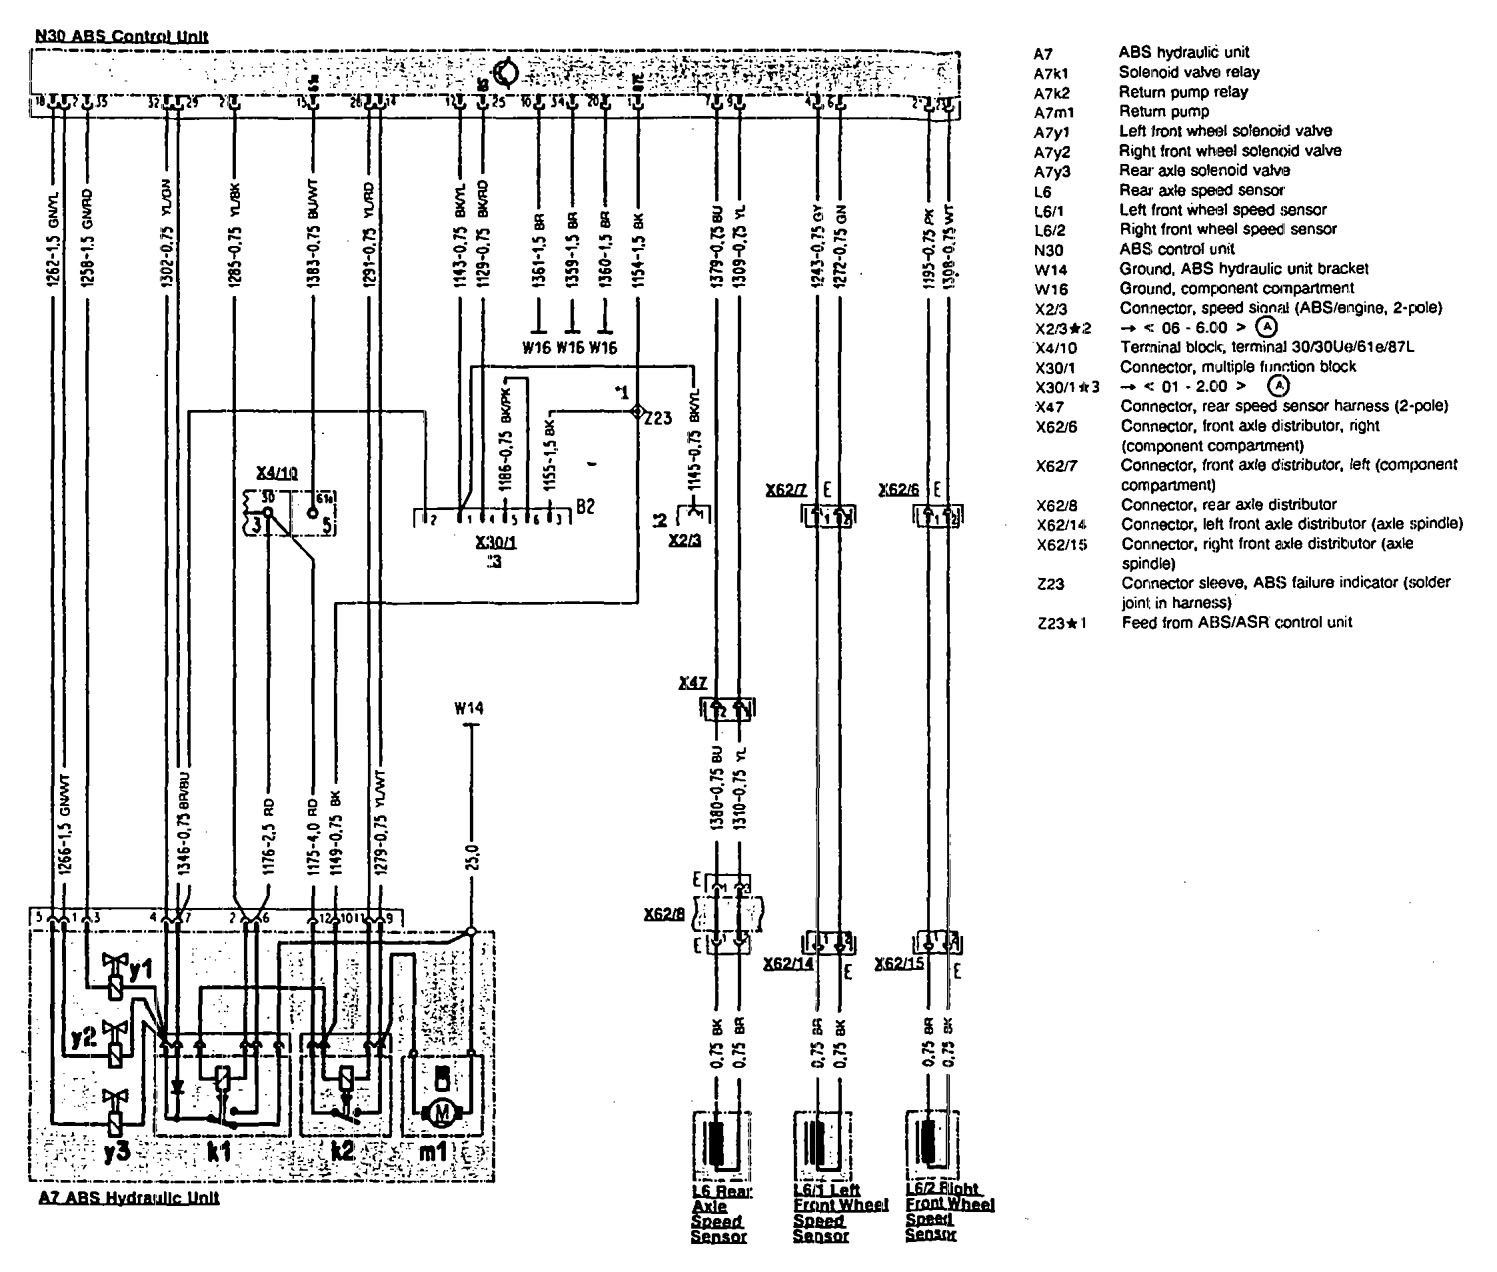 Mercedes-Benz 500SL (1990 - 1992) - wiring diagrams - ABS -  Carknowledge.infoCarknowledge.info